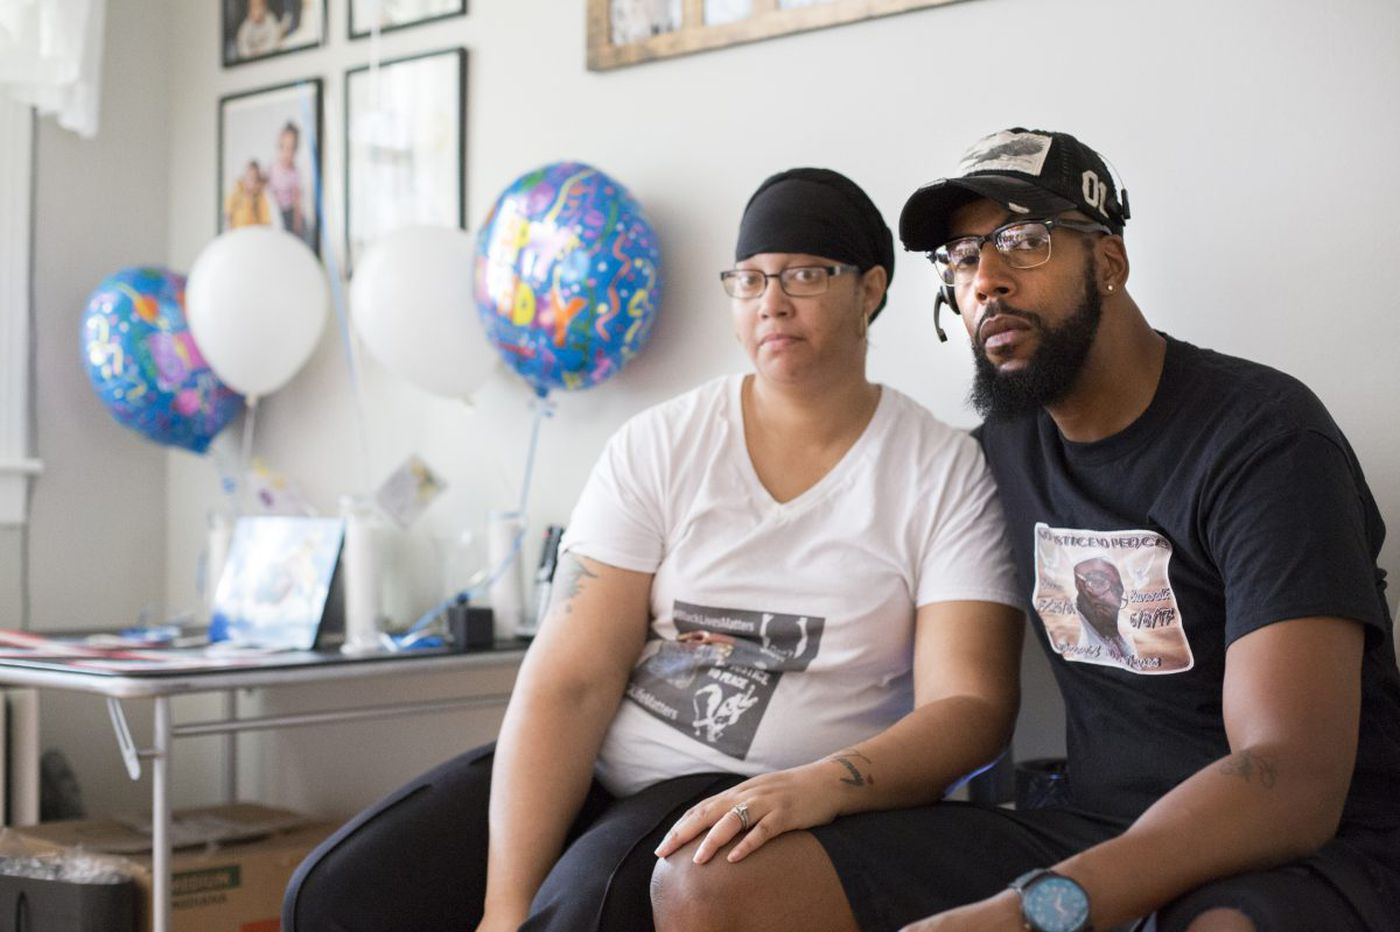 Shot in the back: Same Philly cop, one man dead, another 'half-killed'